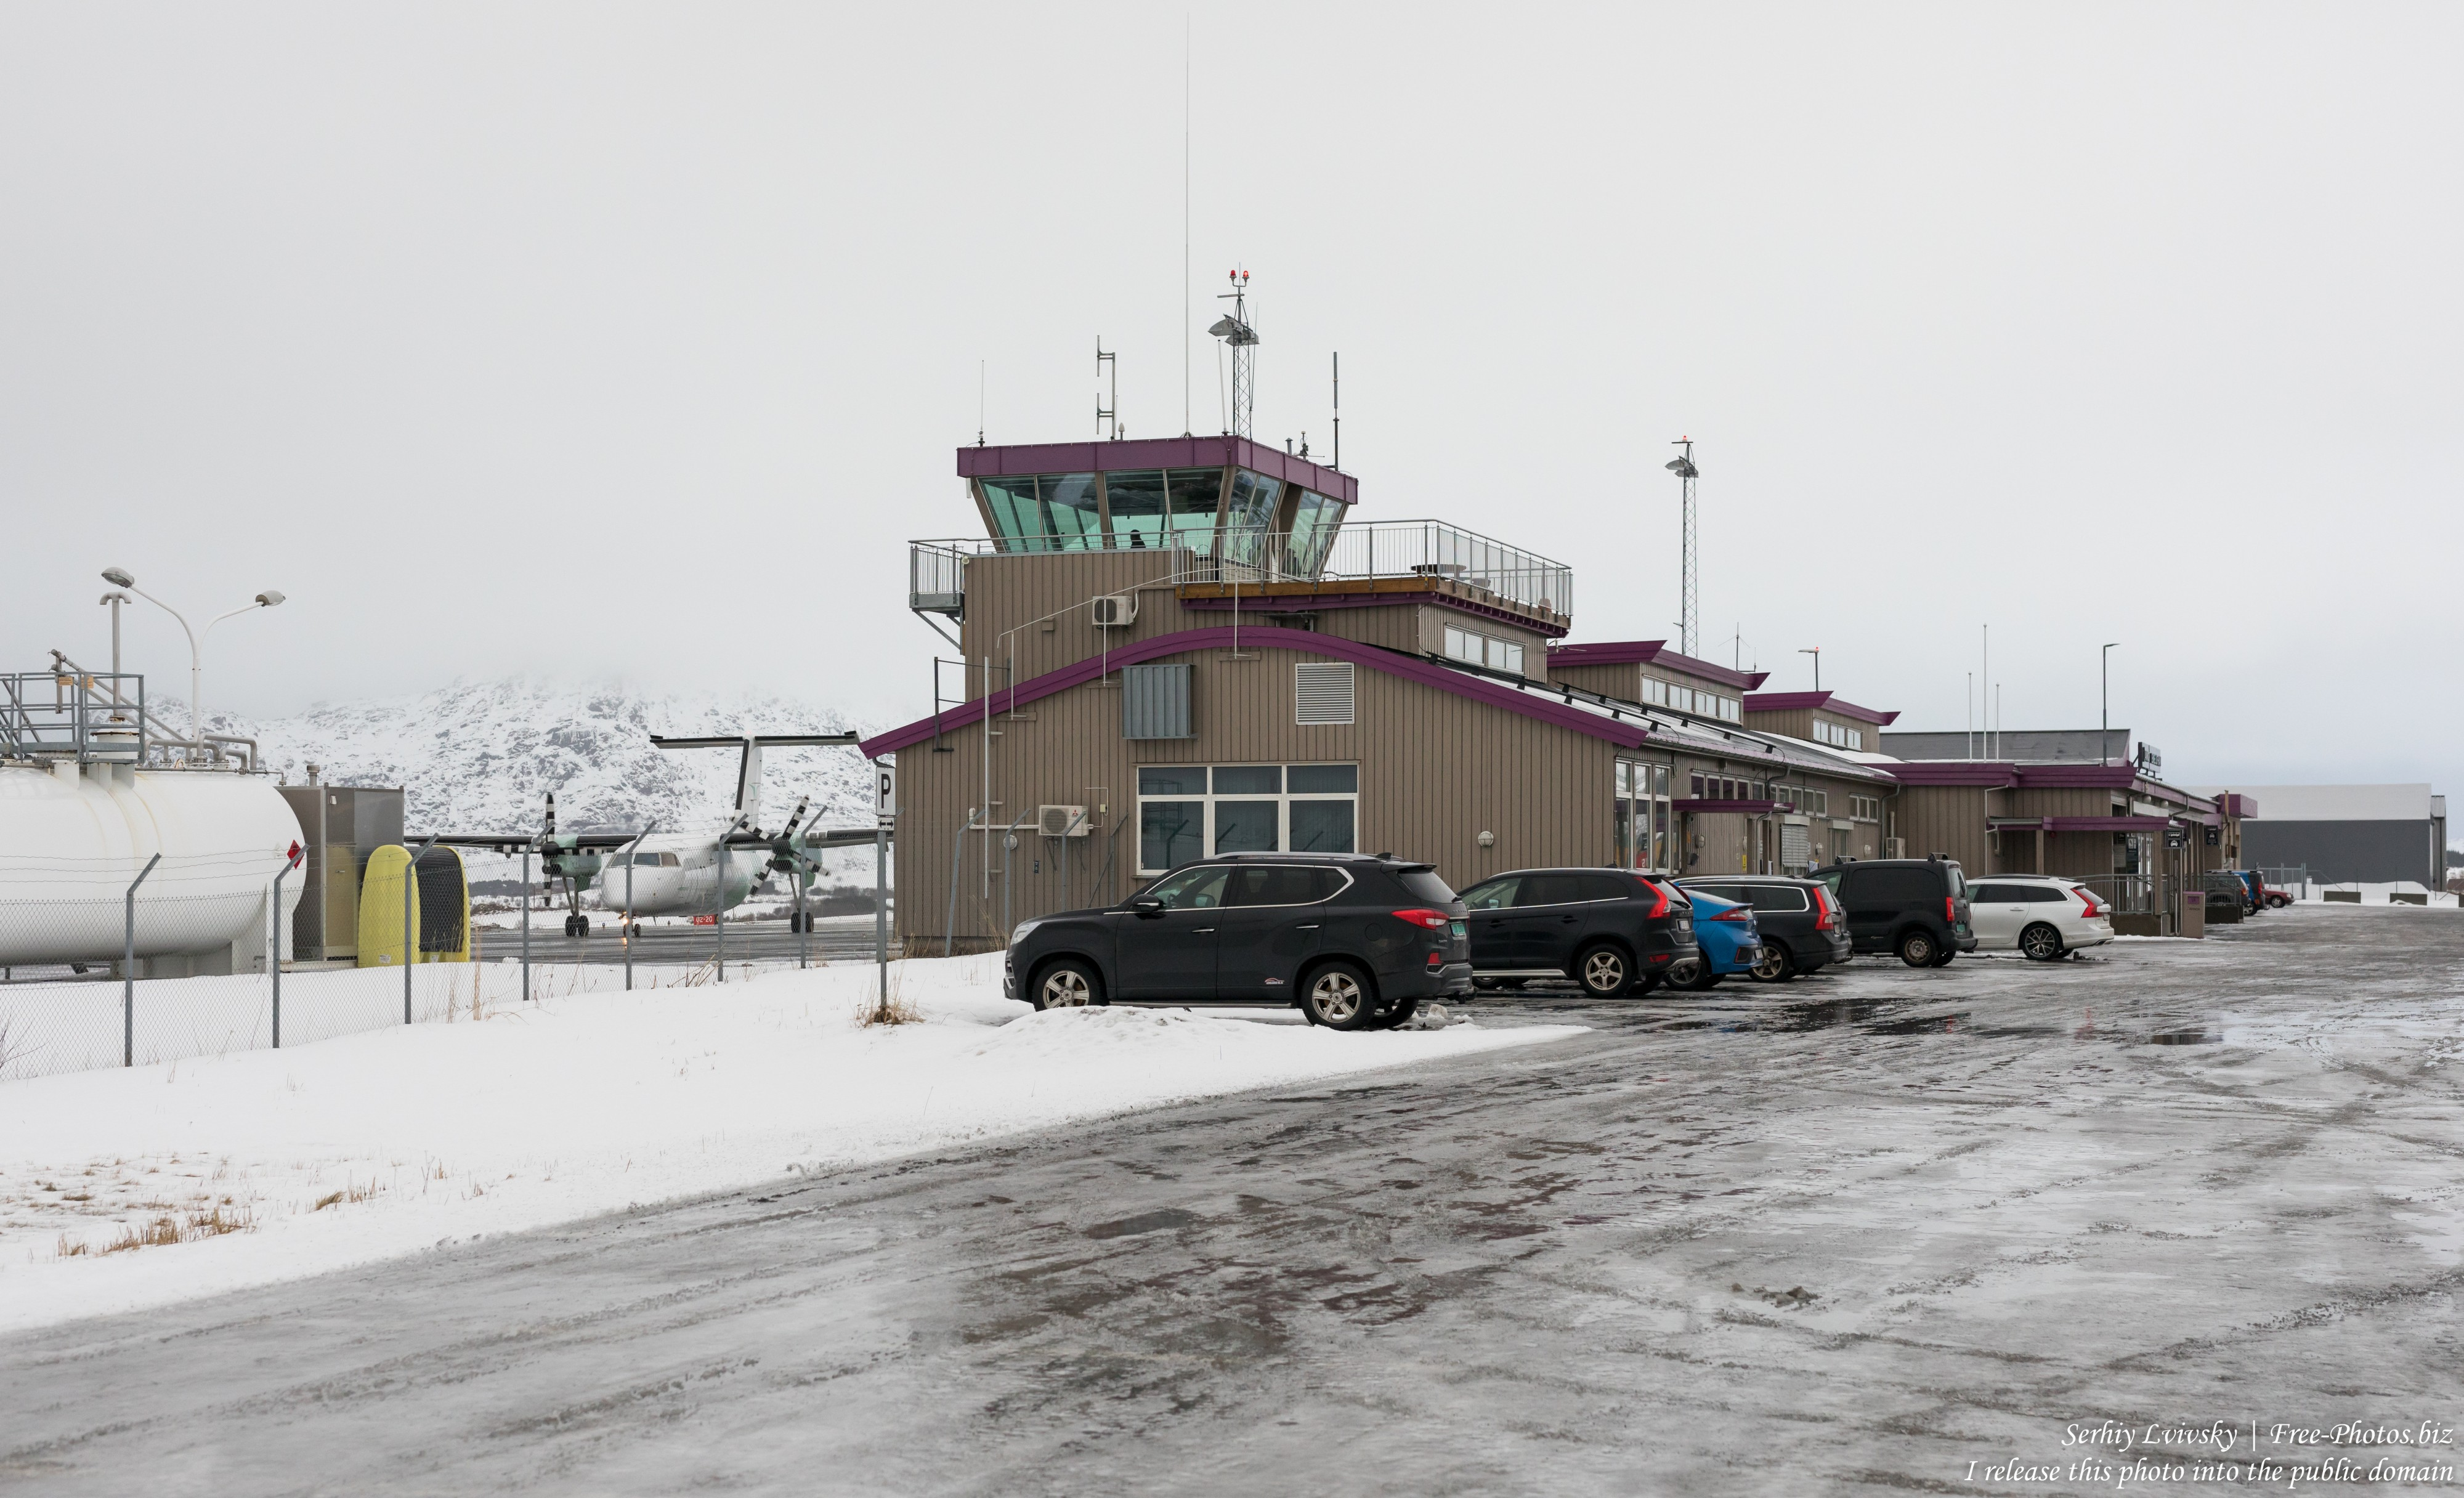 Leknes airport, Norway, in February 2020, by Serhiy Lvivsky, picture 2